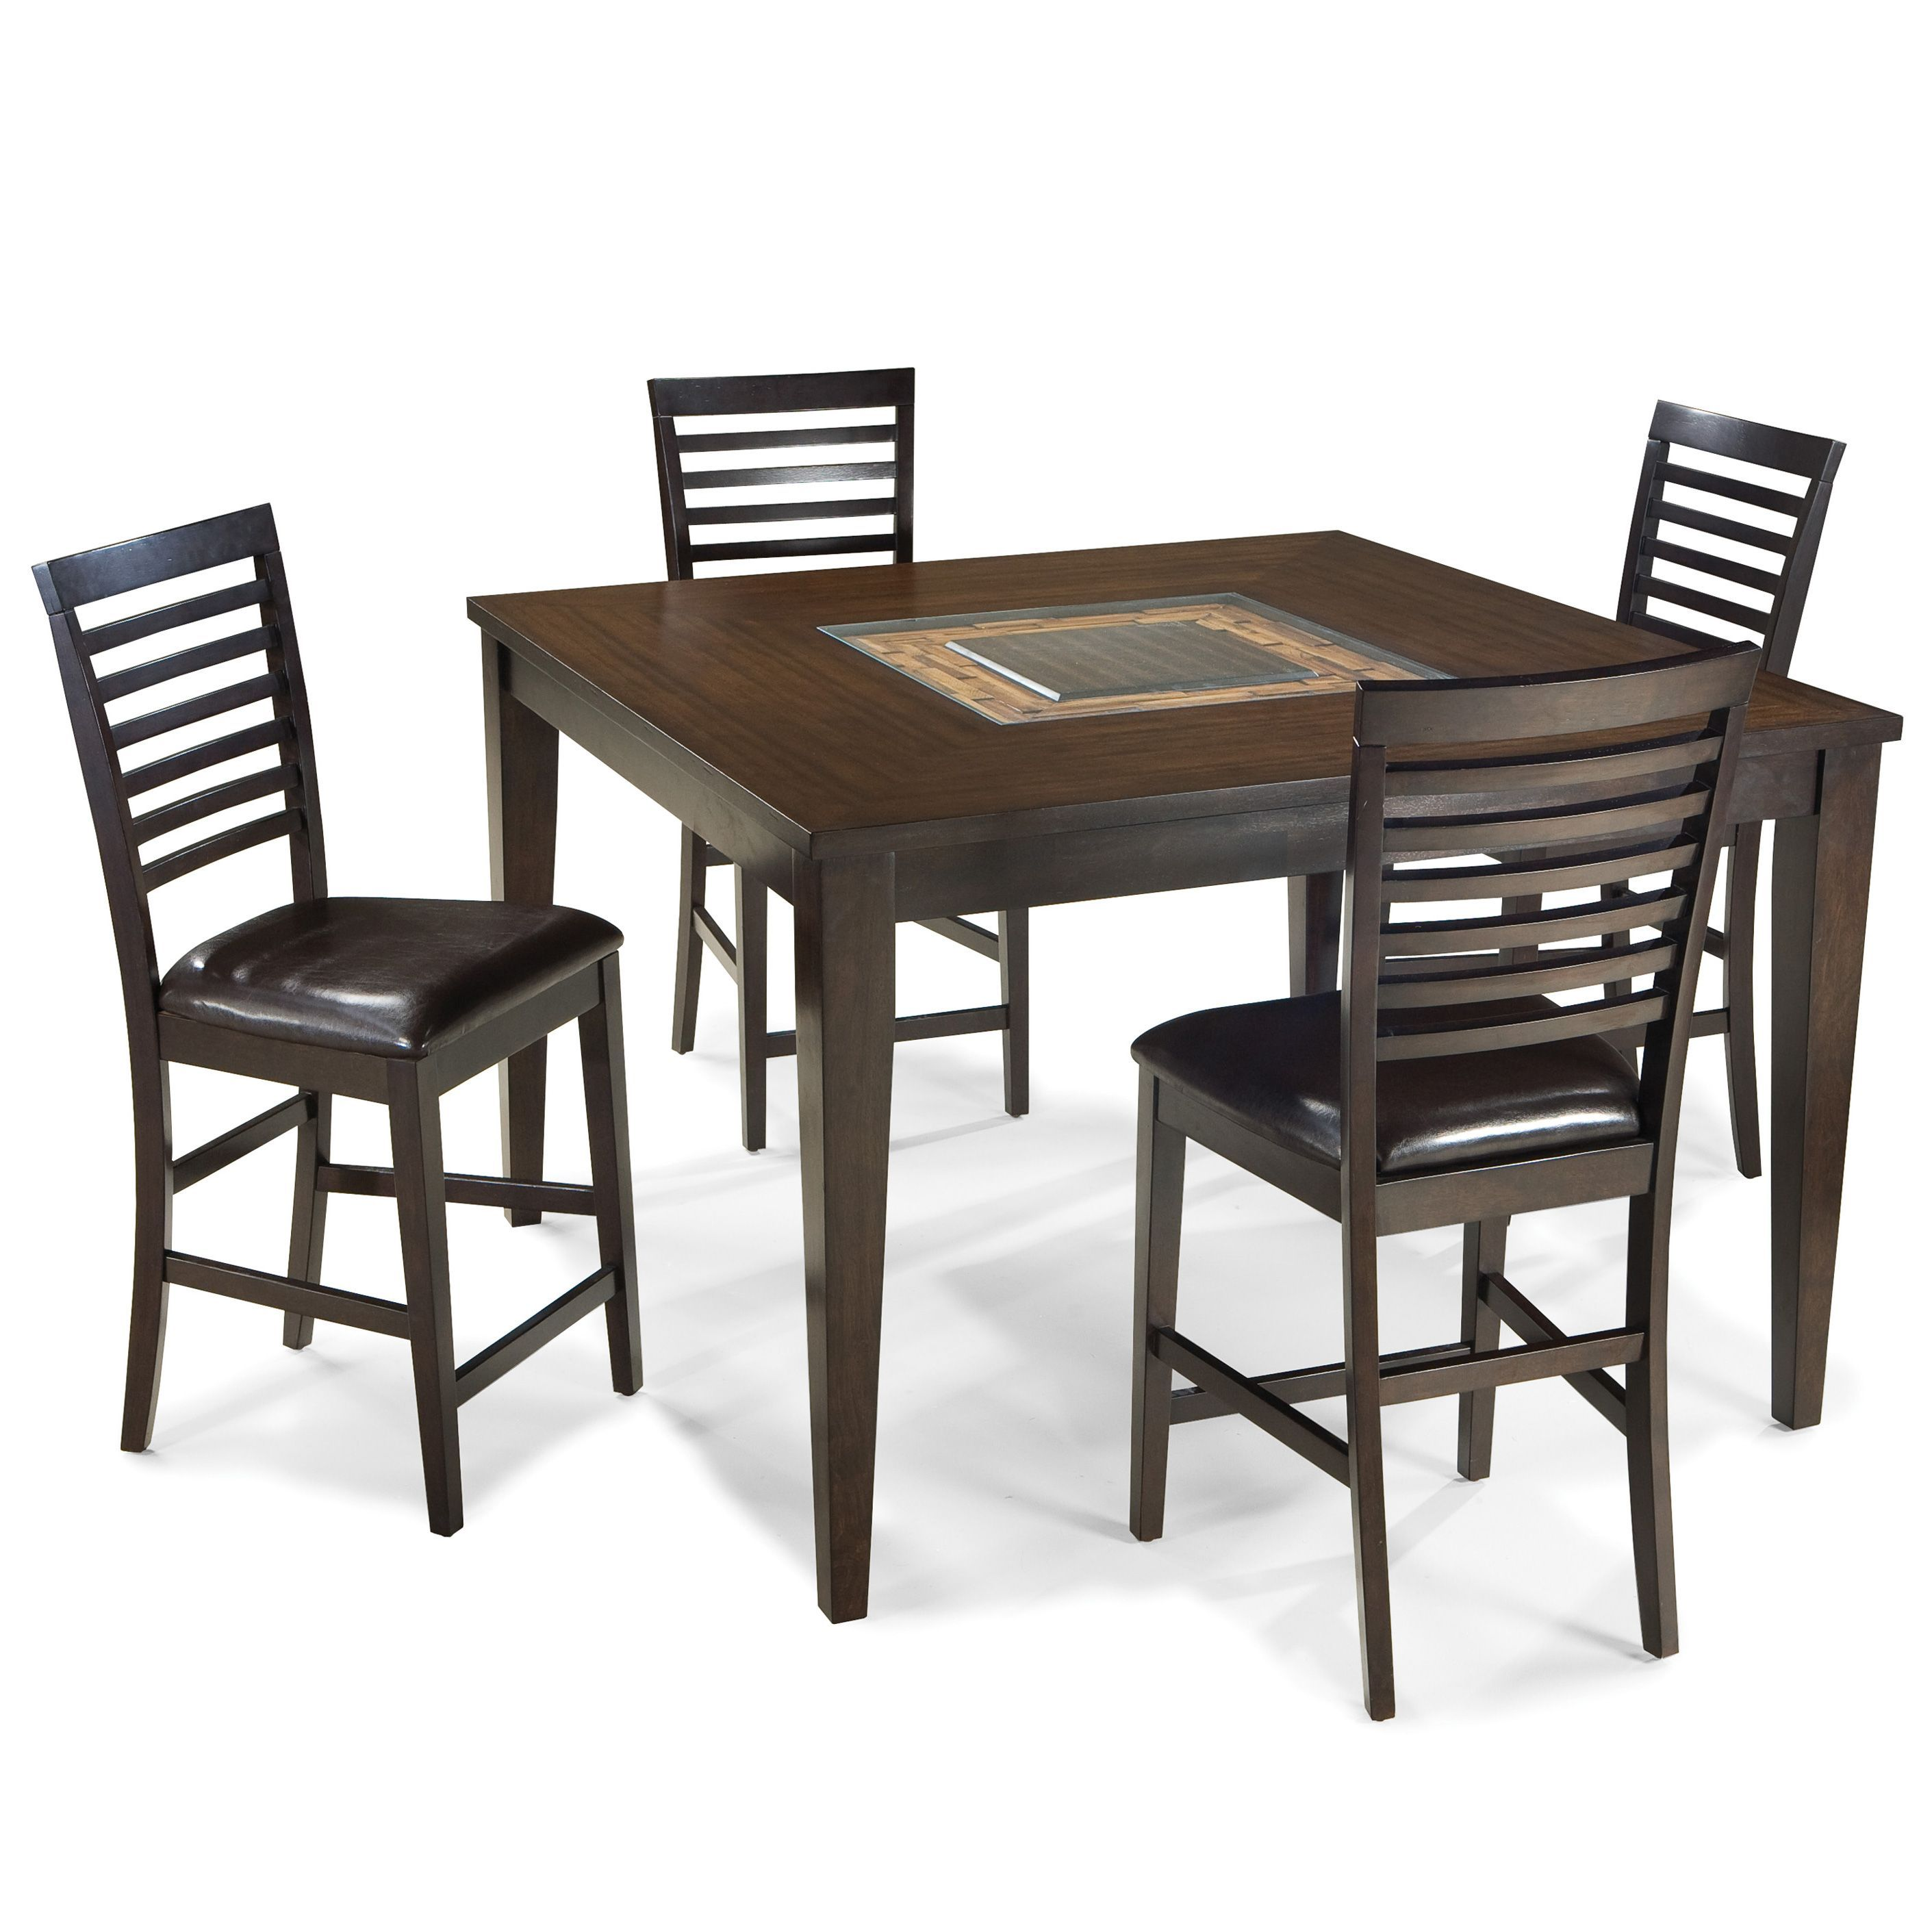 Intercon Kashi 54 Inch Square Gathering Table 54x54 Brown Chocolate